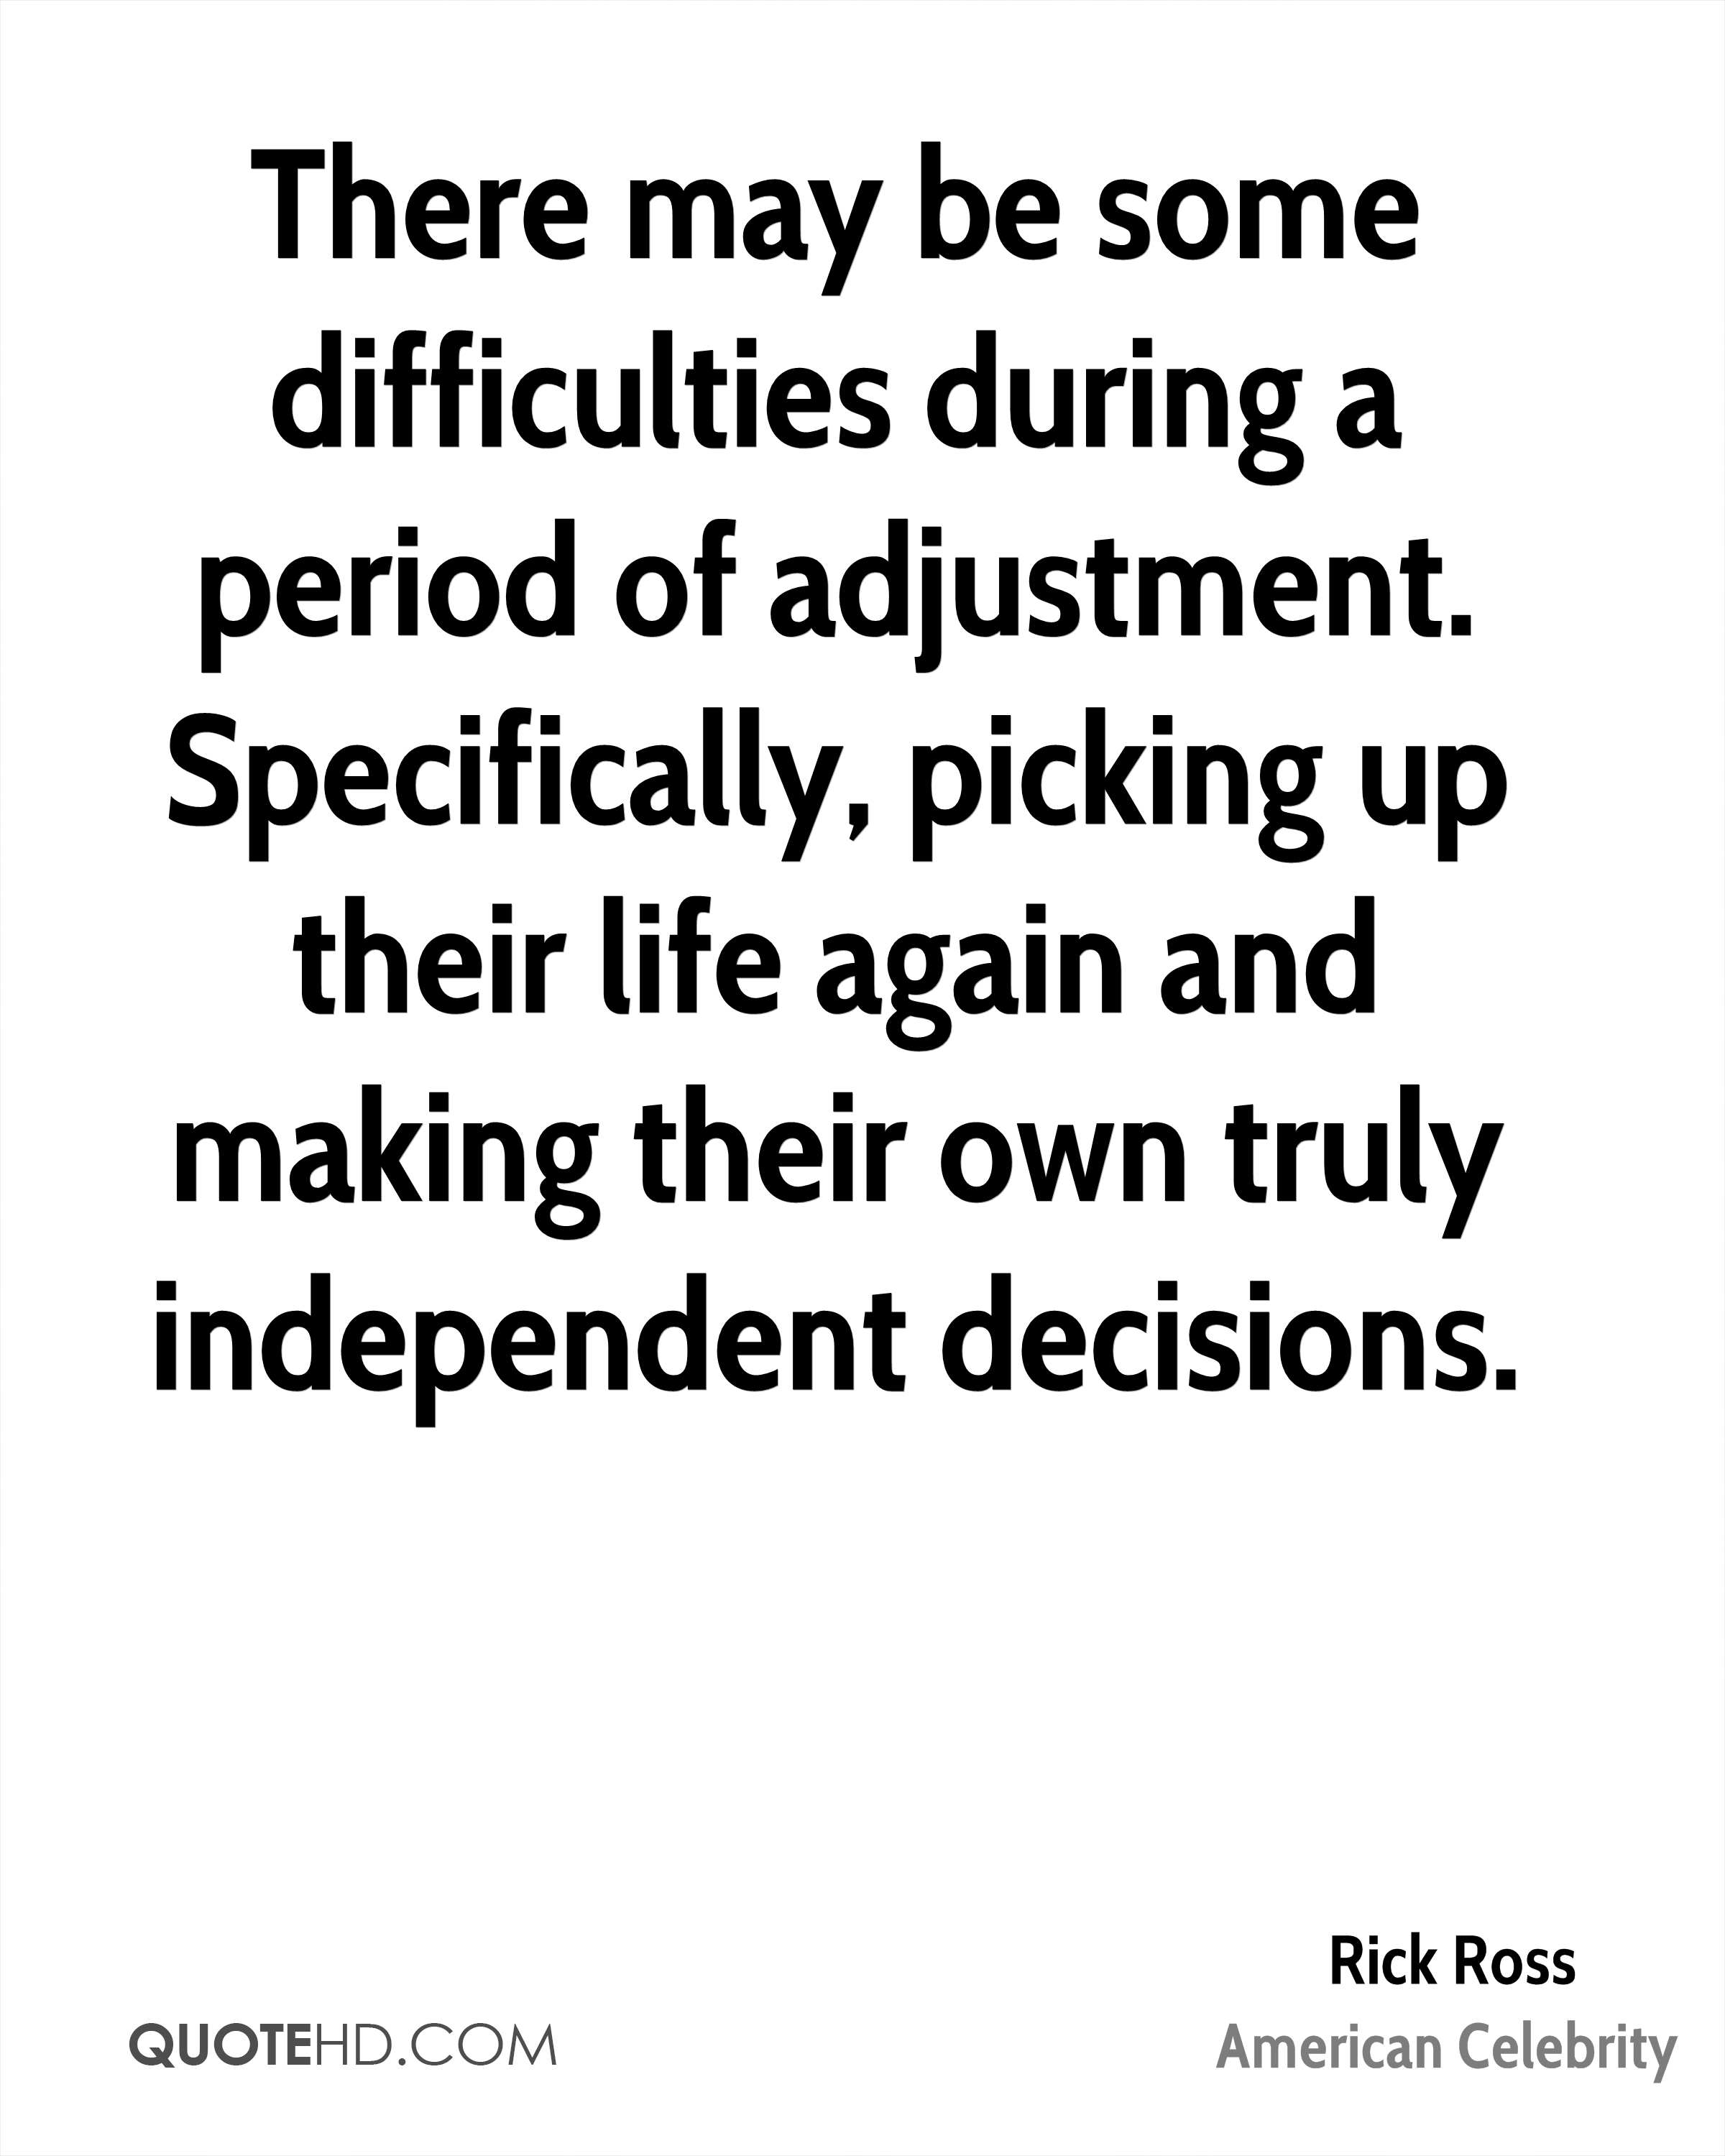 There may be some difficulties during a period of adjustment. Specifically, picking up their life again and making their own truly independent decisions.